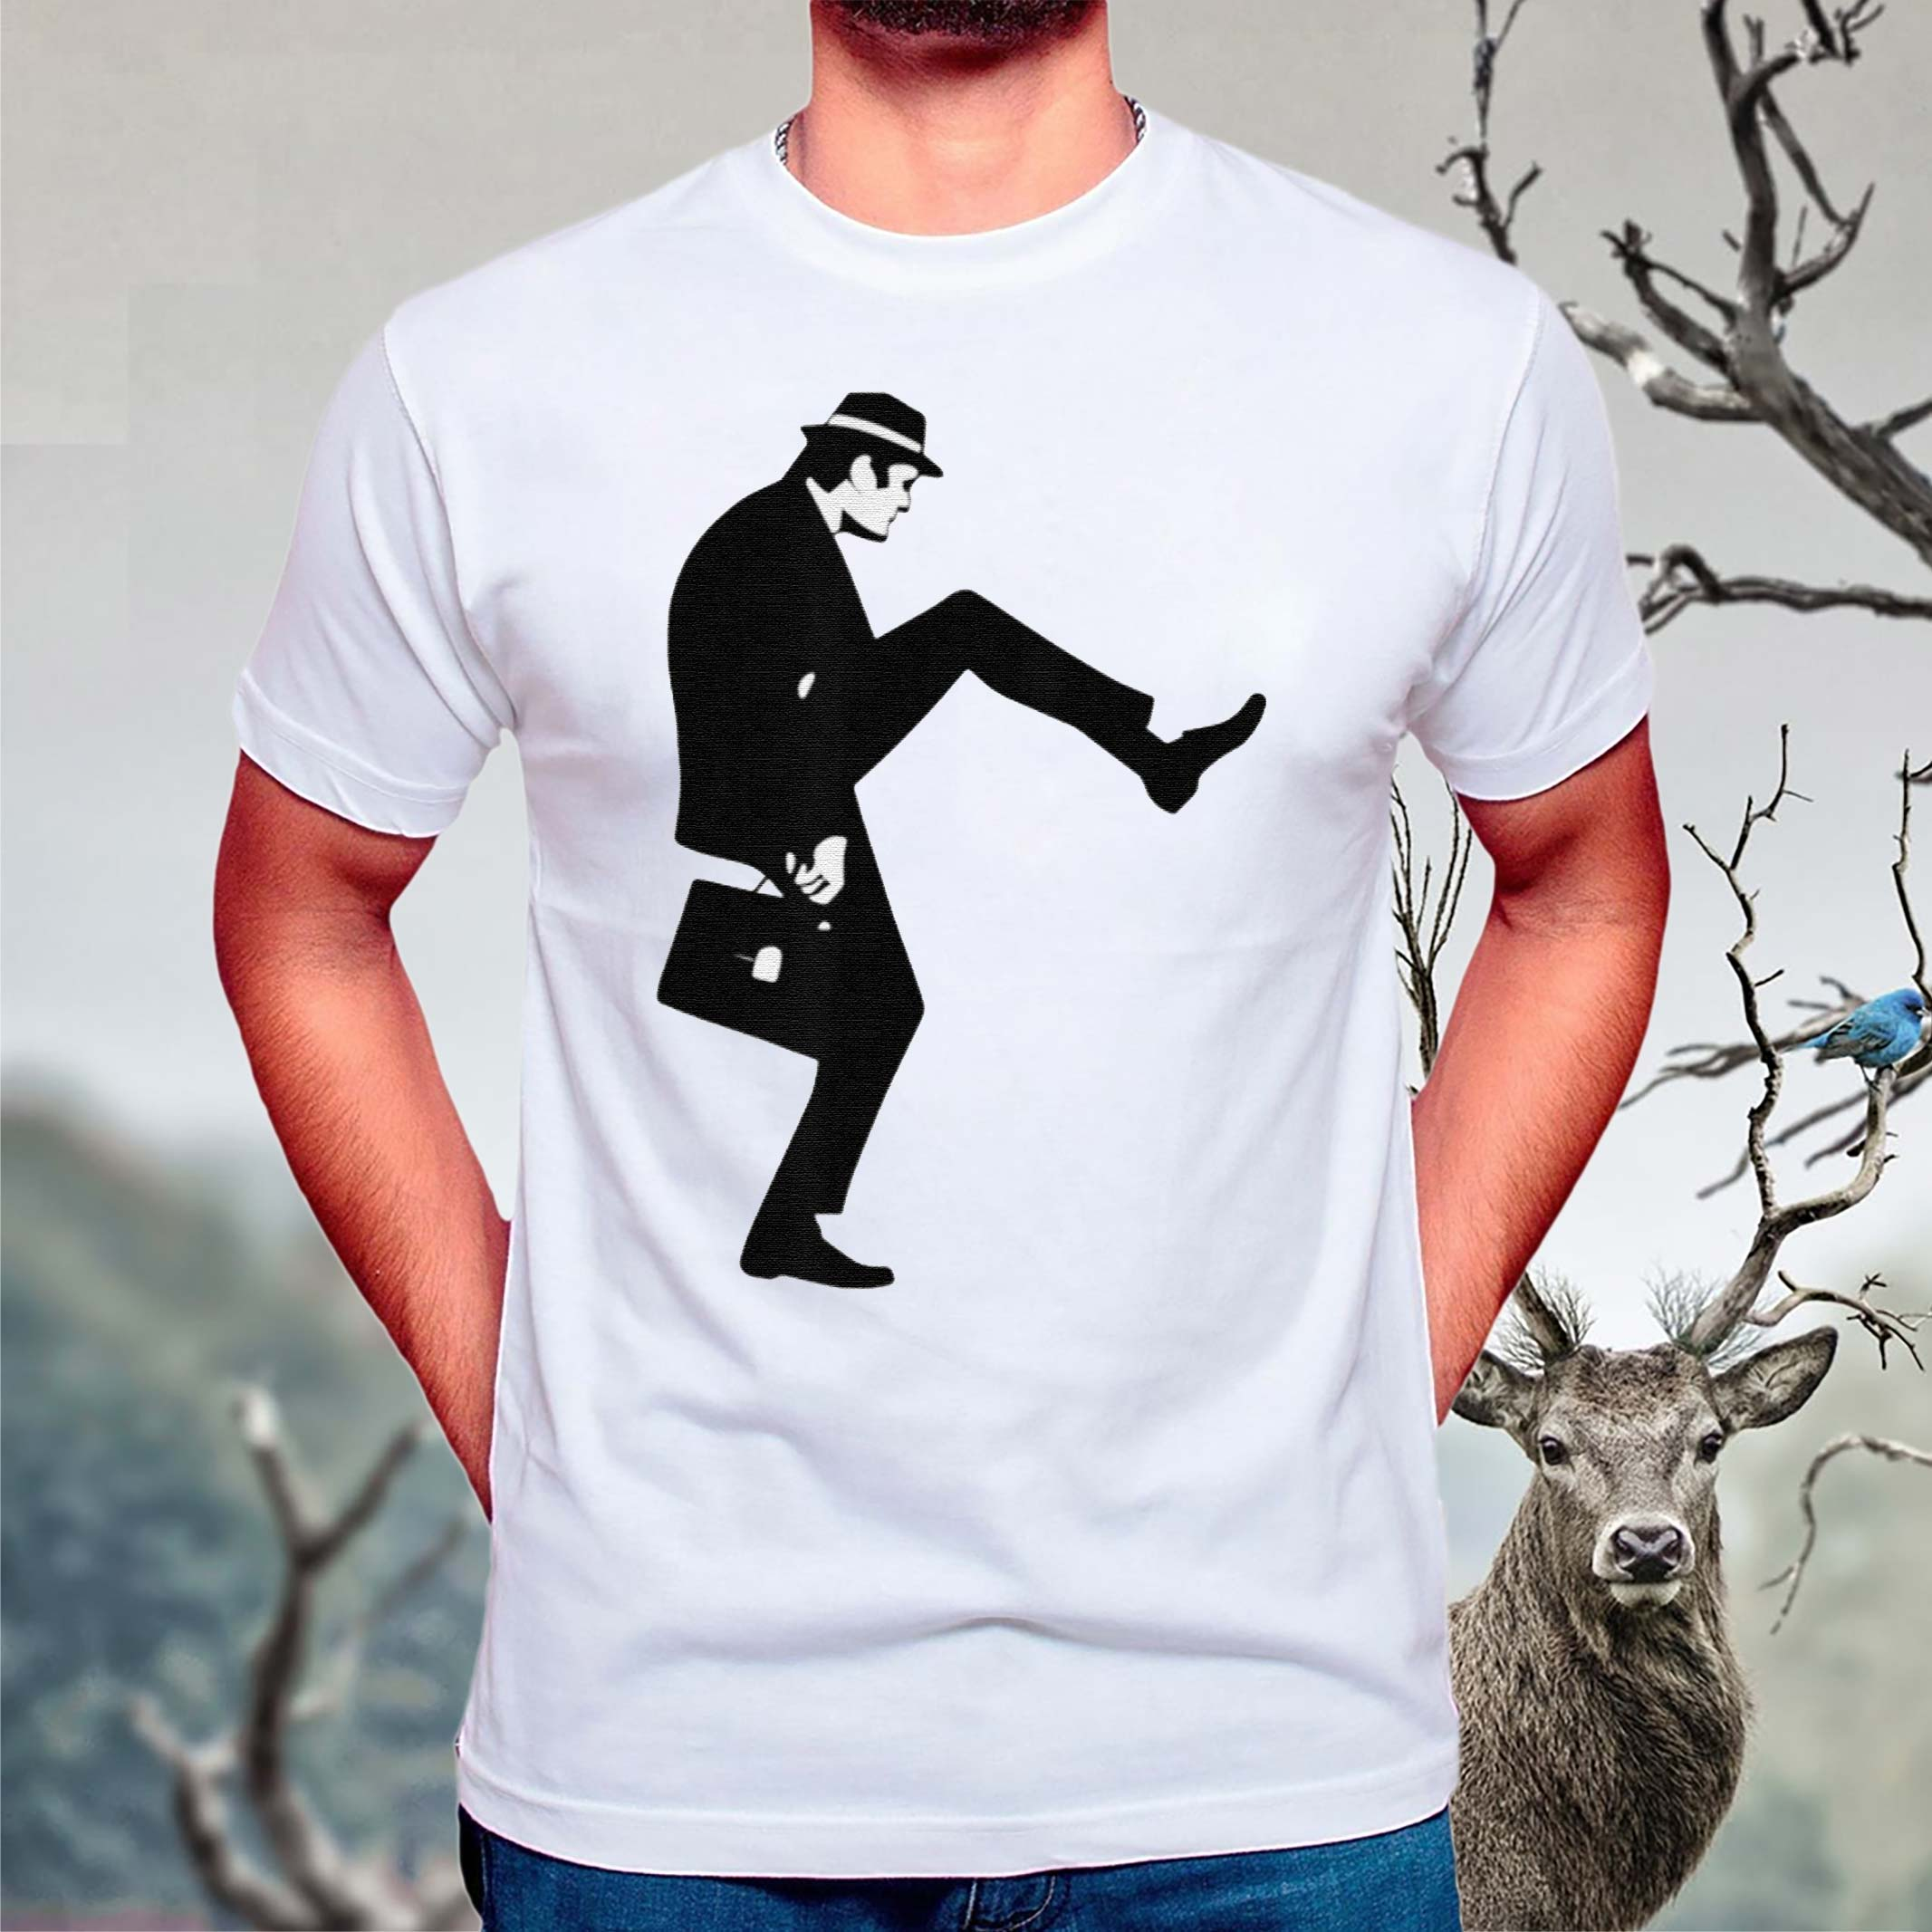 The-Ministry-of-Silly-Walks-T-Shirt